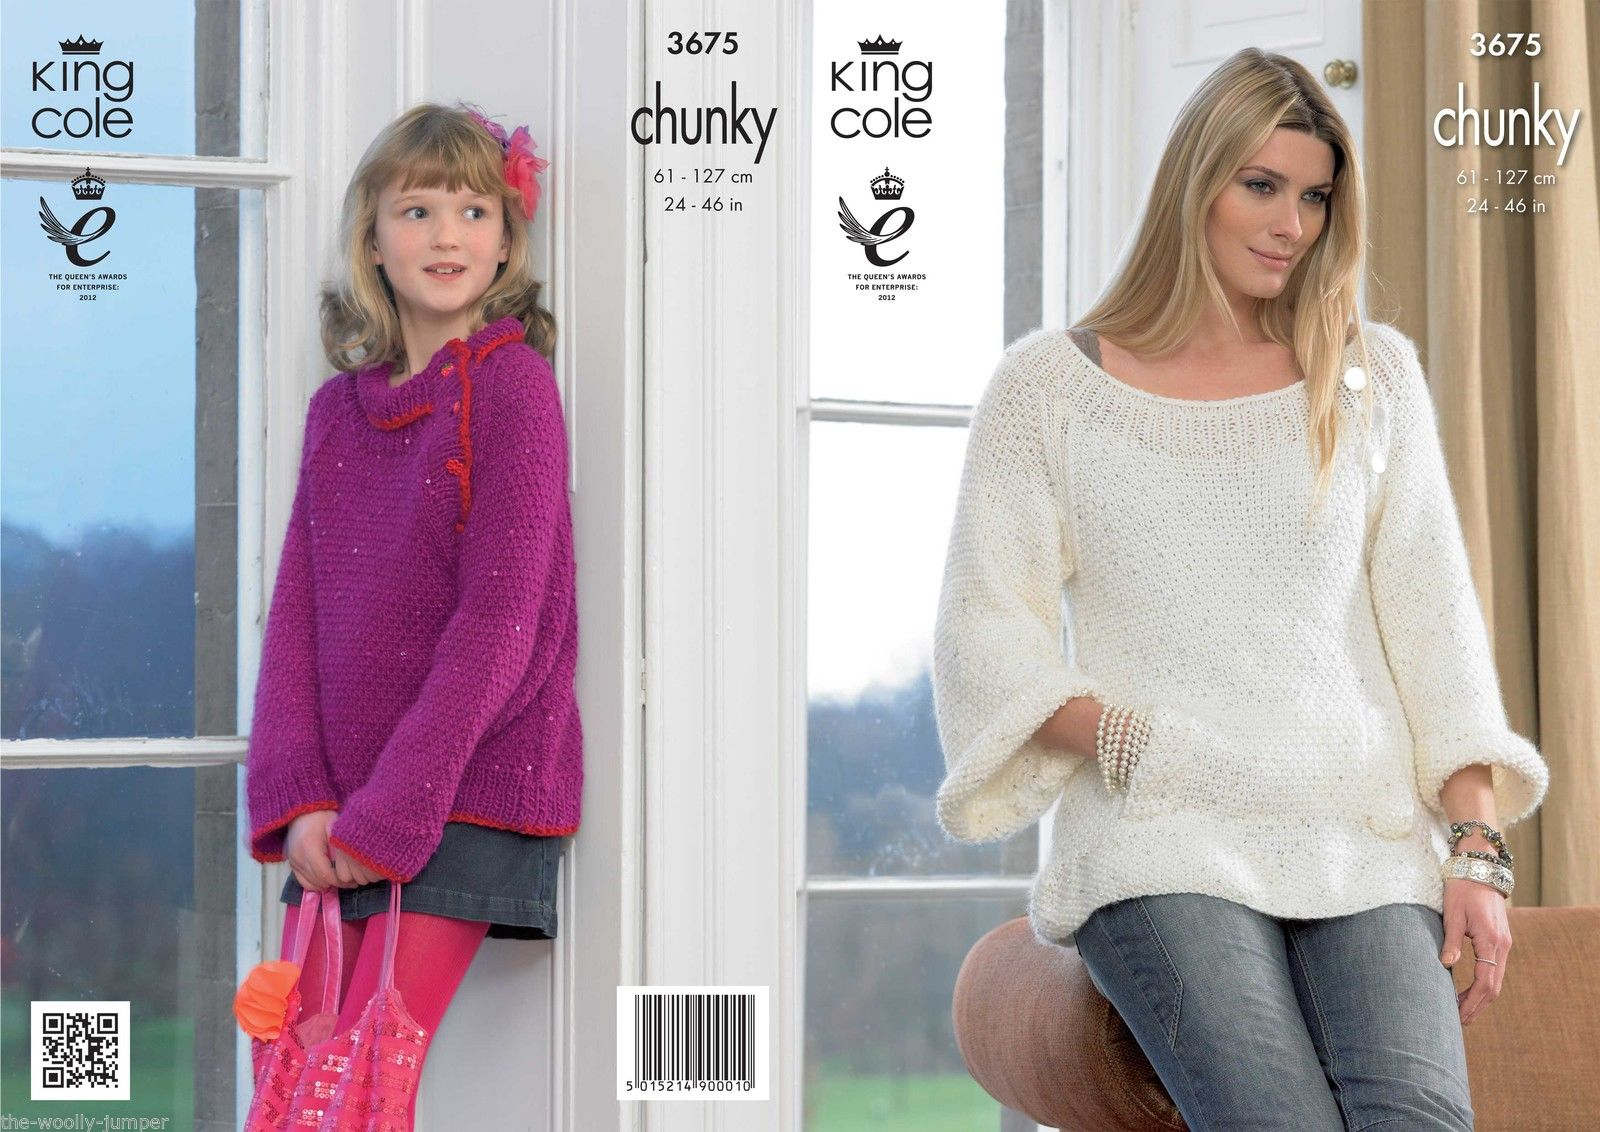 3675 king cole galaxy chunky tunic sweater knitting pattern 3675 king cole galaxy chunky tunic sweater knitting pattern to fit 24 to 46 bankloansurffo Gallery